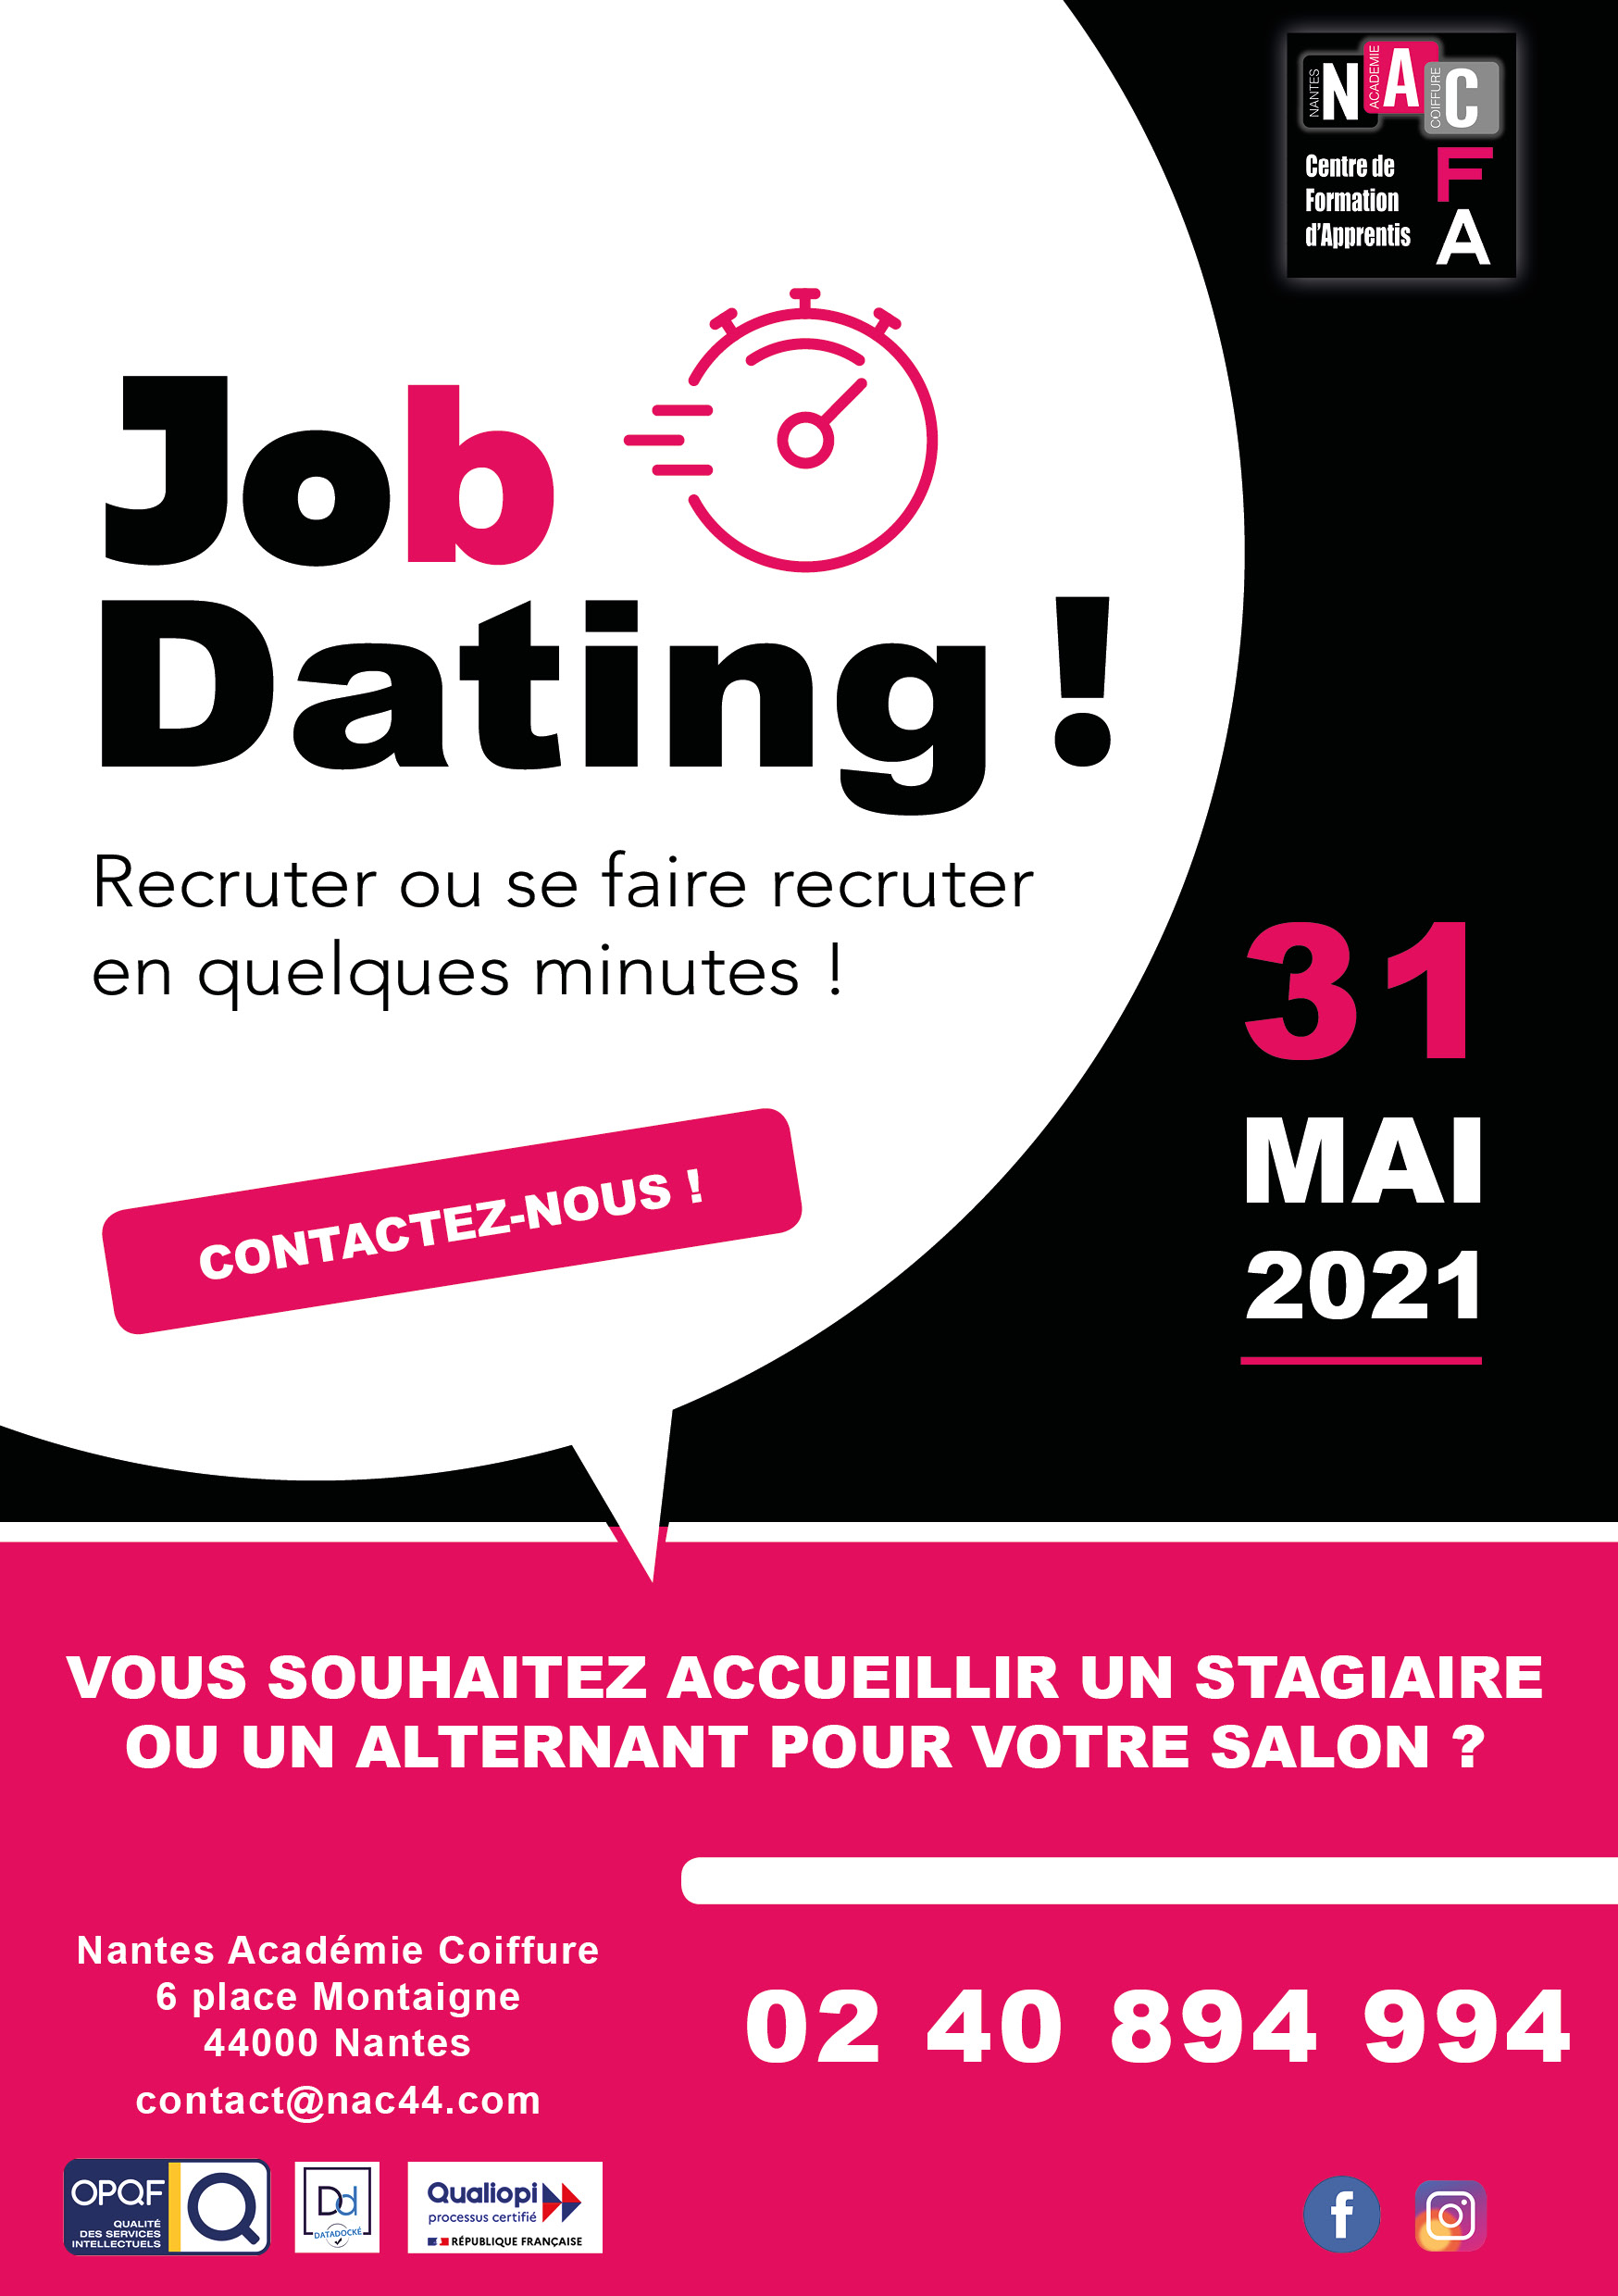 JOB DATING 31 MAI 2021 Nantes Académie Coiffure